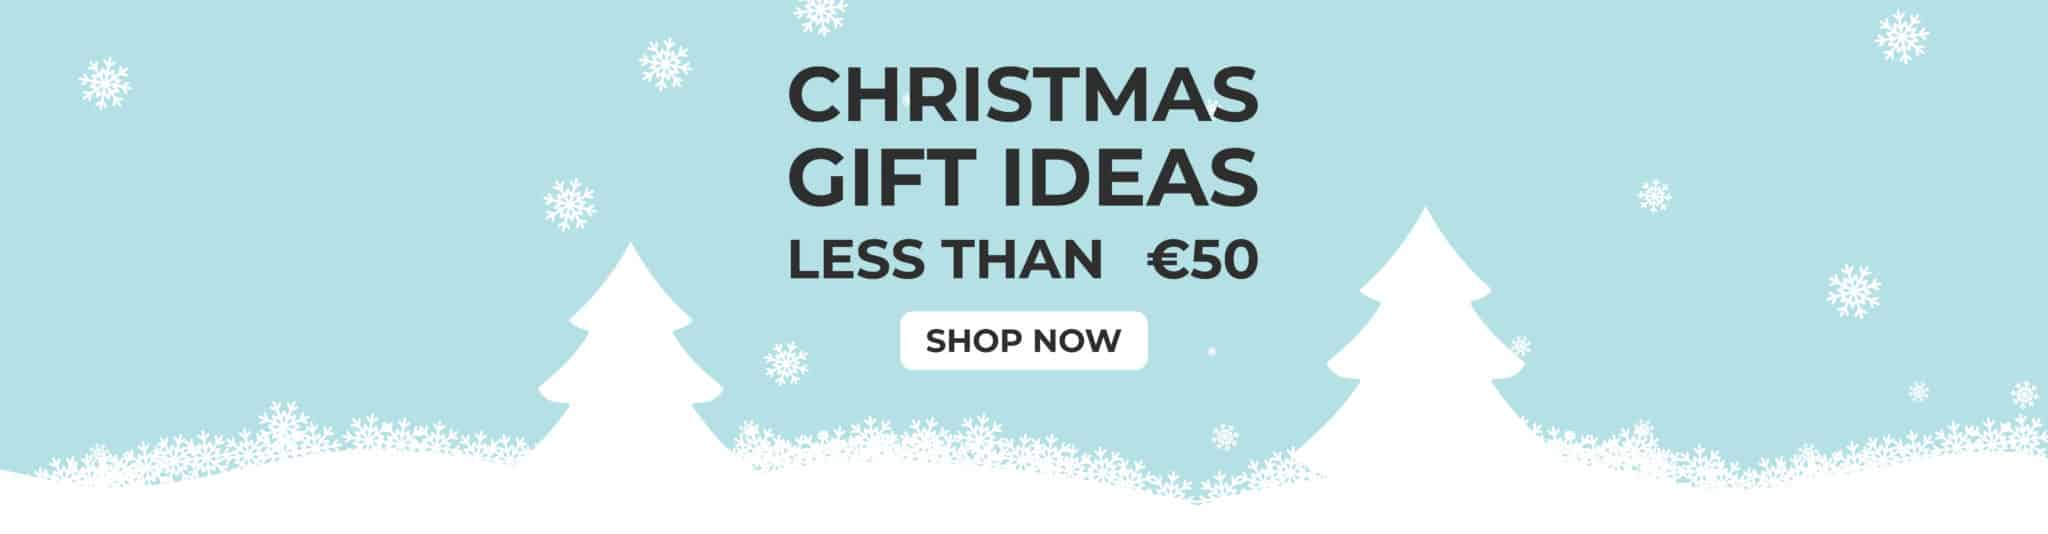 Gifts Less Than €50